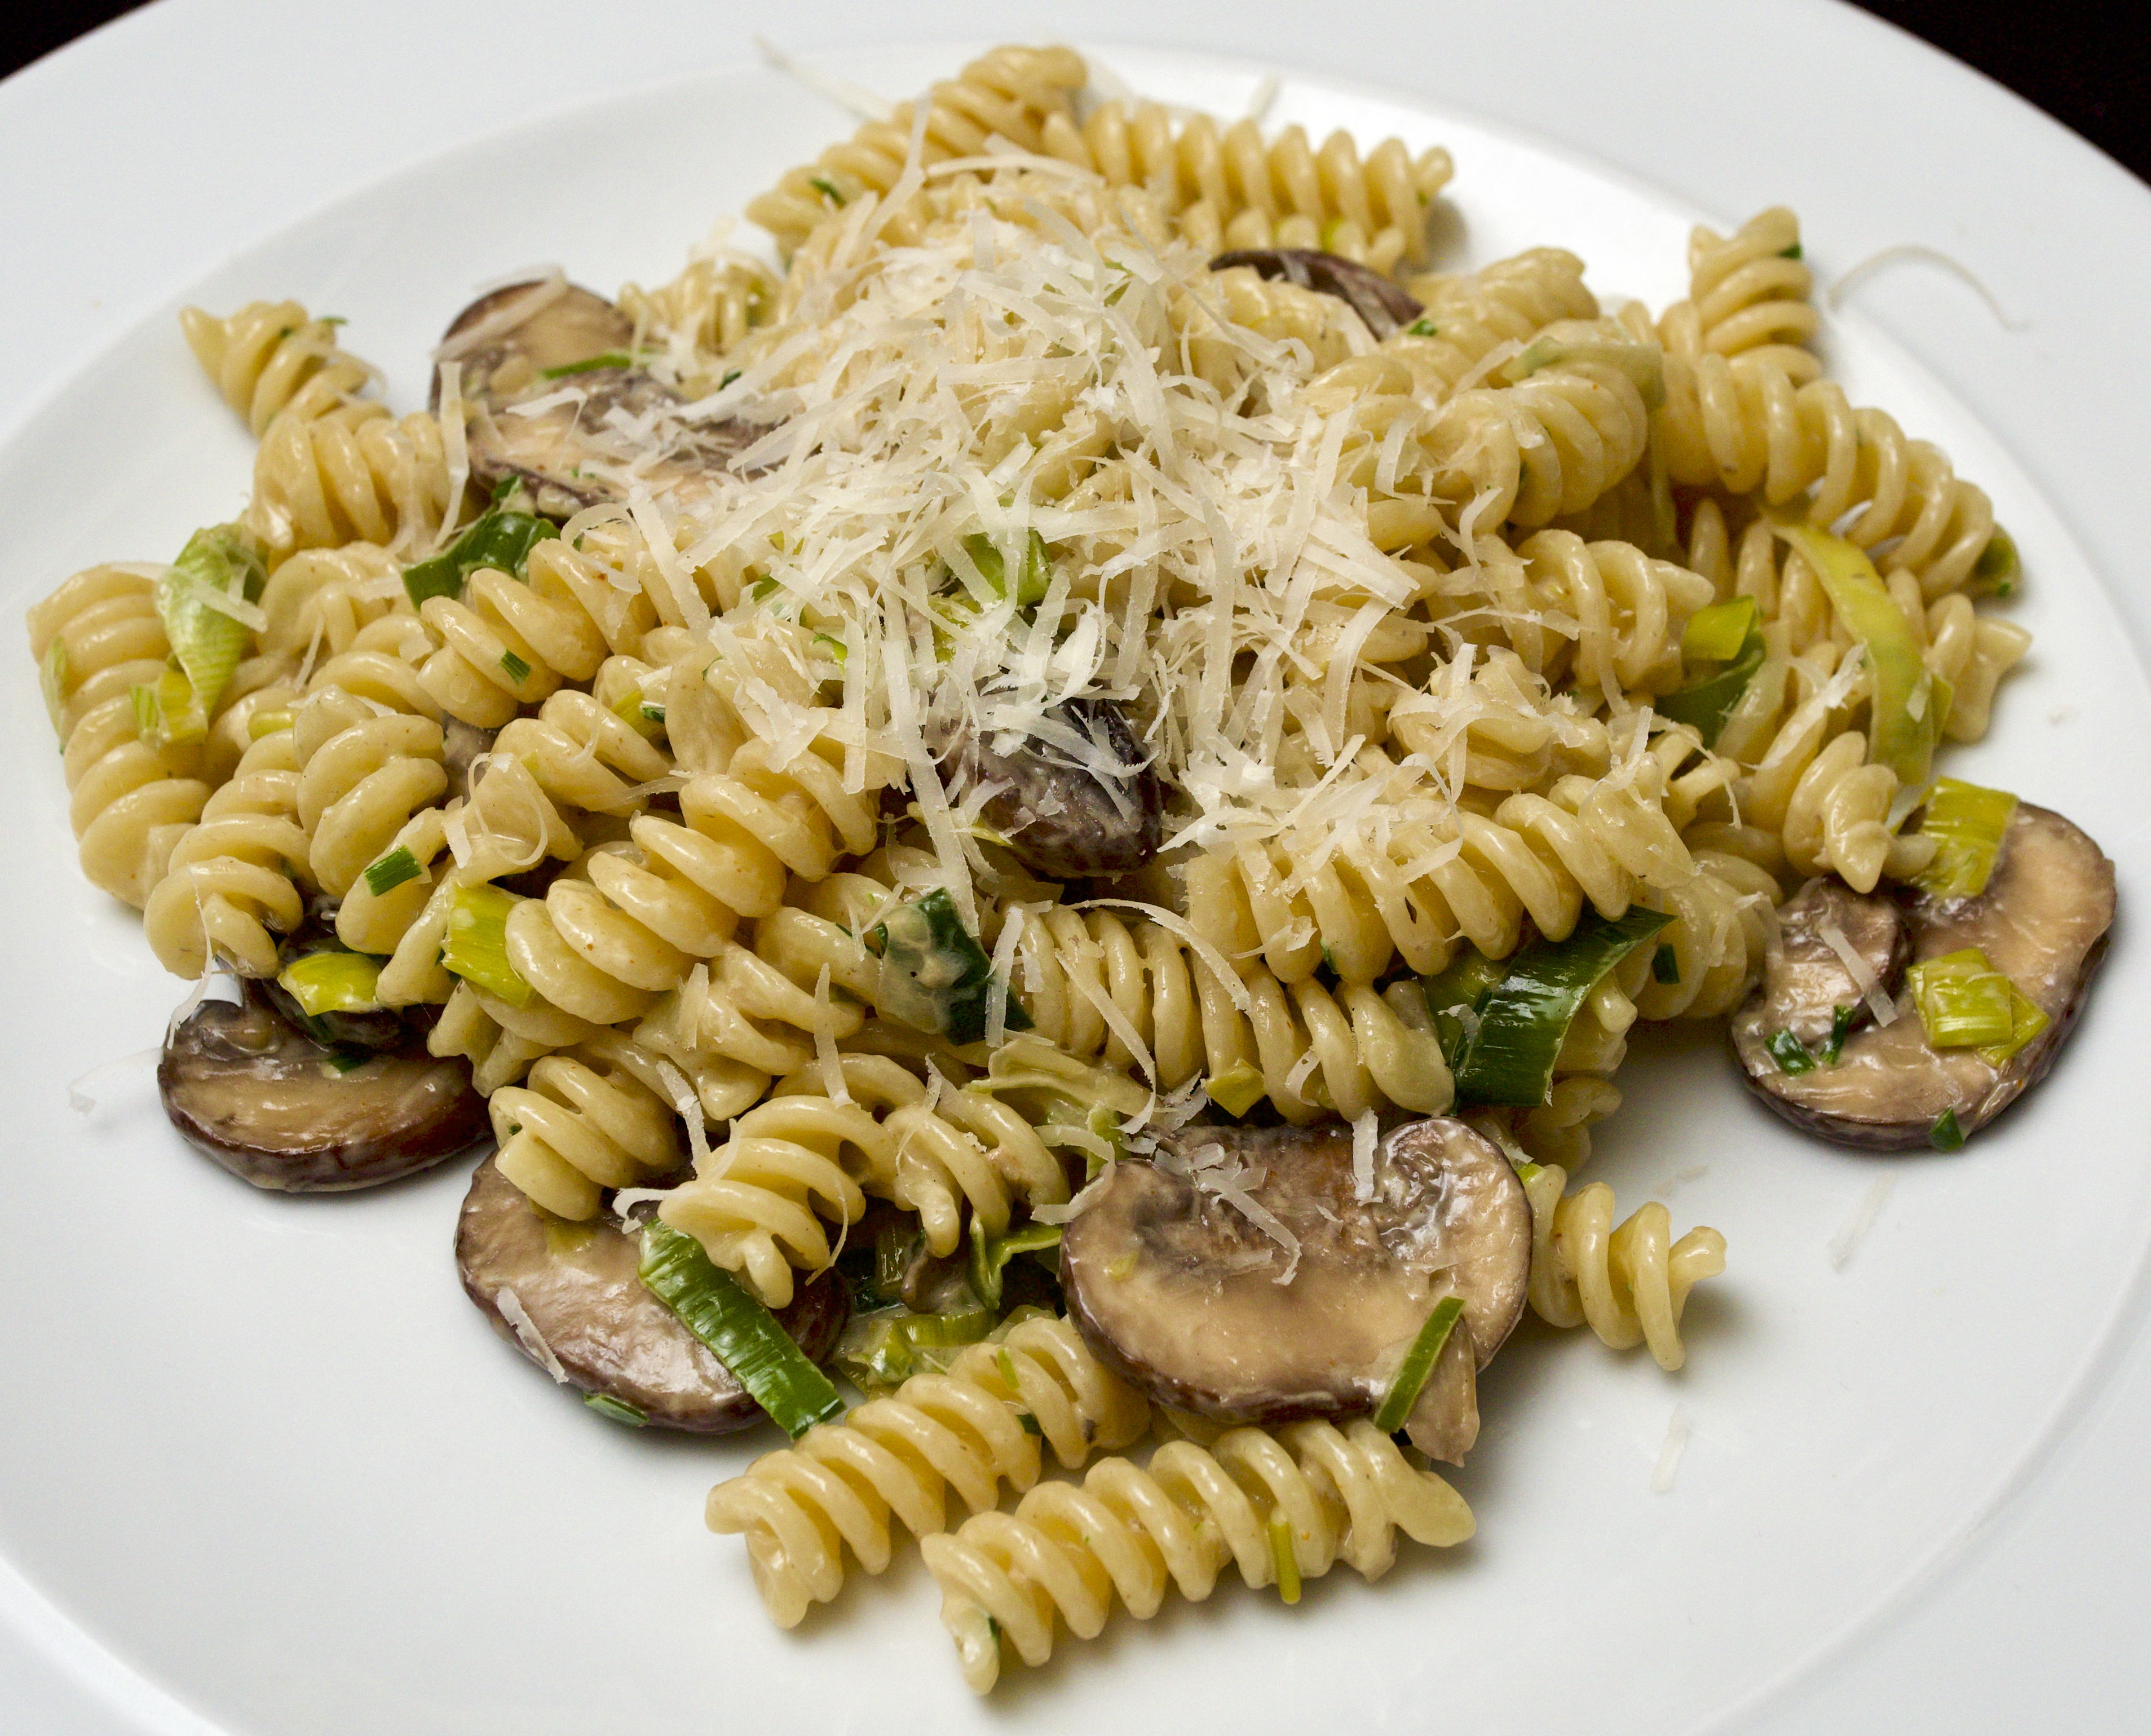 Fusilli with Chestnut Mushrooms, Leeks and Mascarpone Cheese